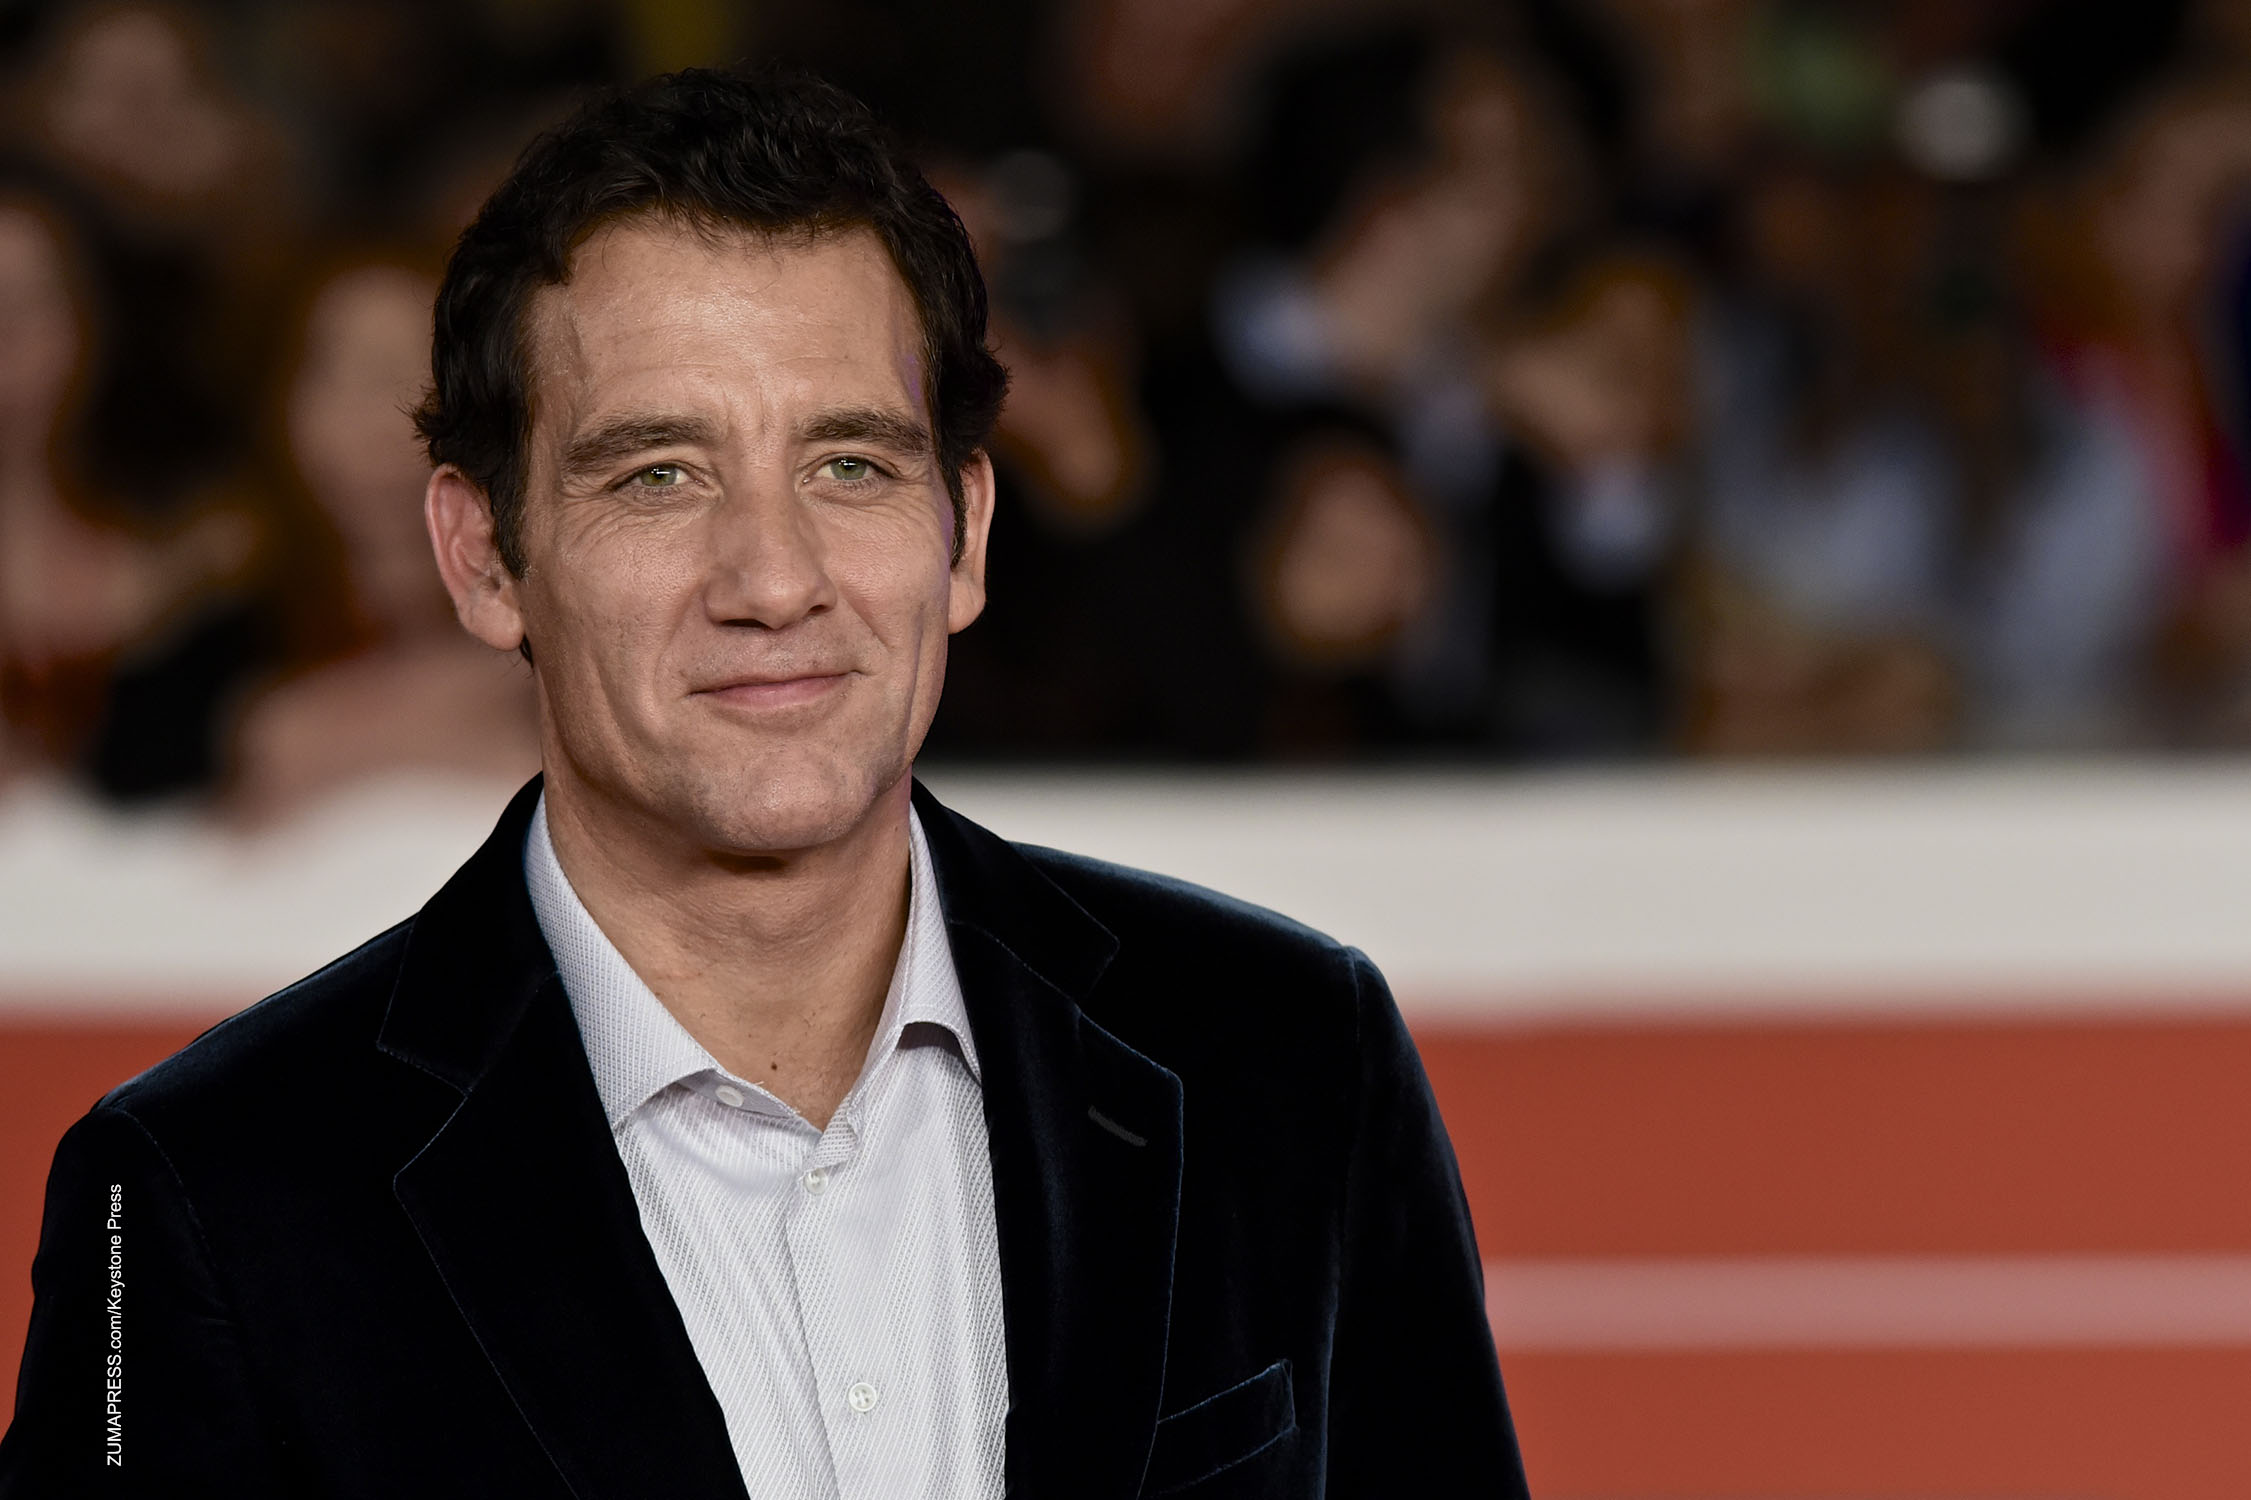 At one point in time he was almost cast as Superman. Another time he was a finalist to be Bond. Studios know he would be great in a heroic role but Clive Owen hasn't found a home at Marvel or DC yet. It's likely only a matter of time.